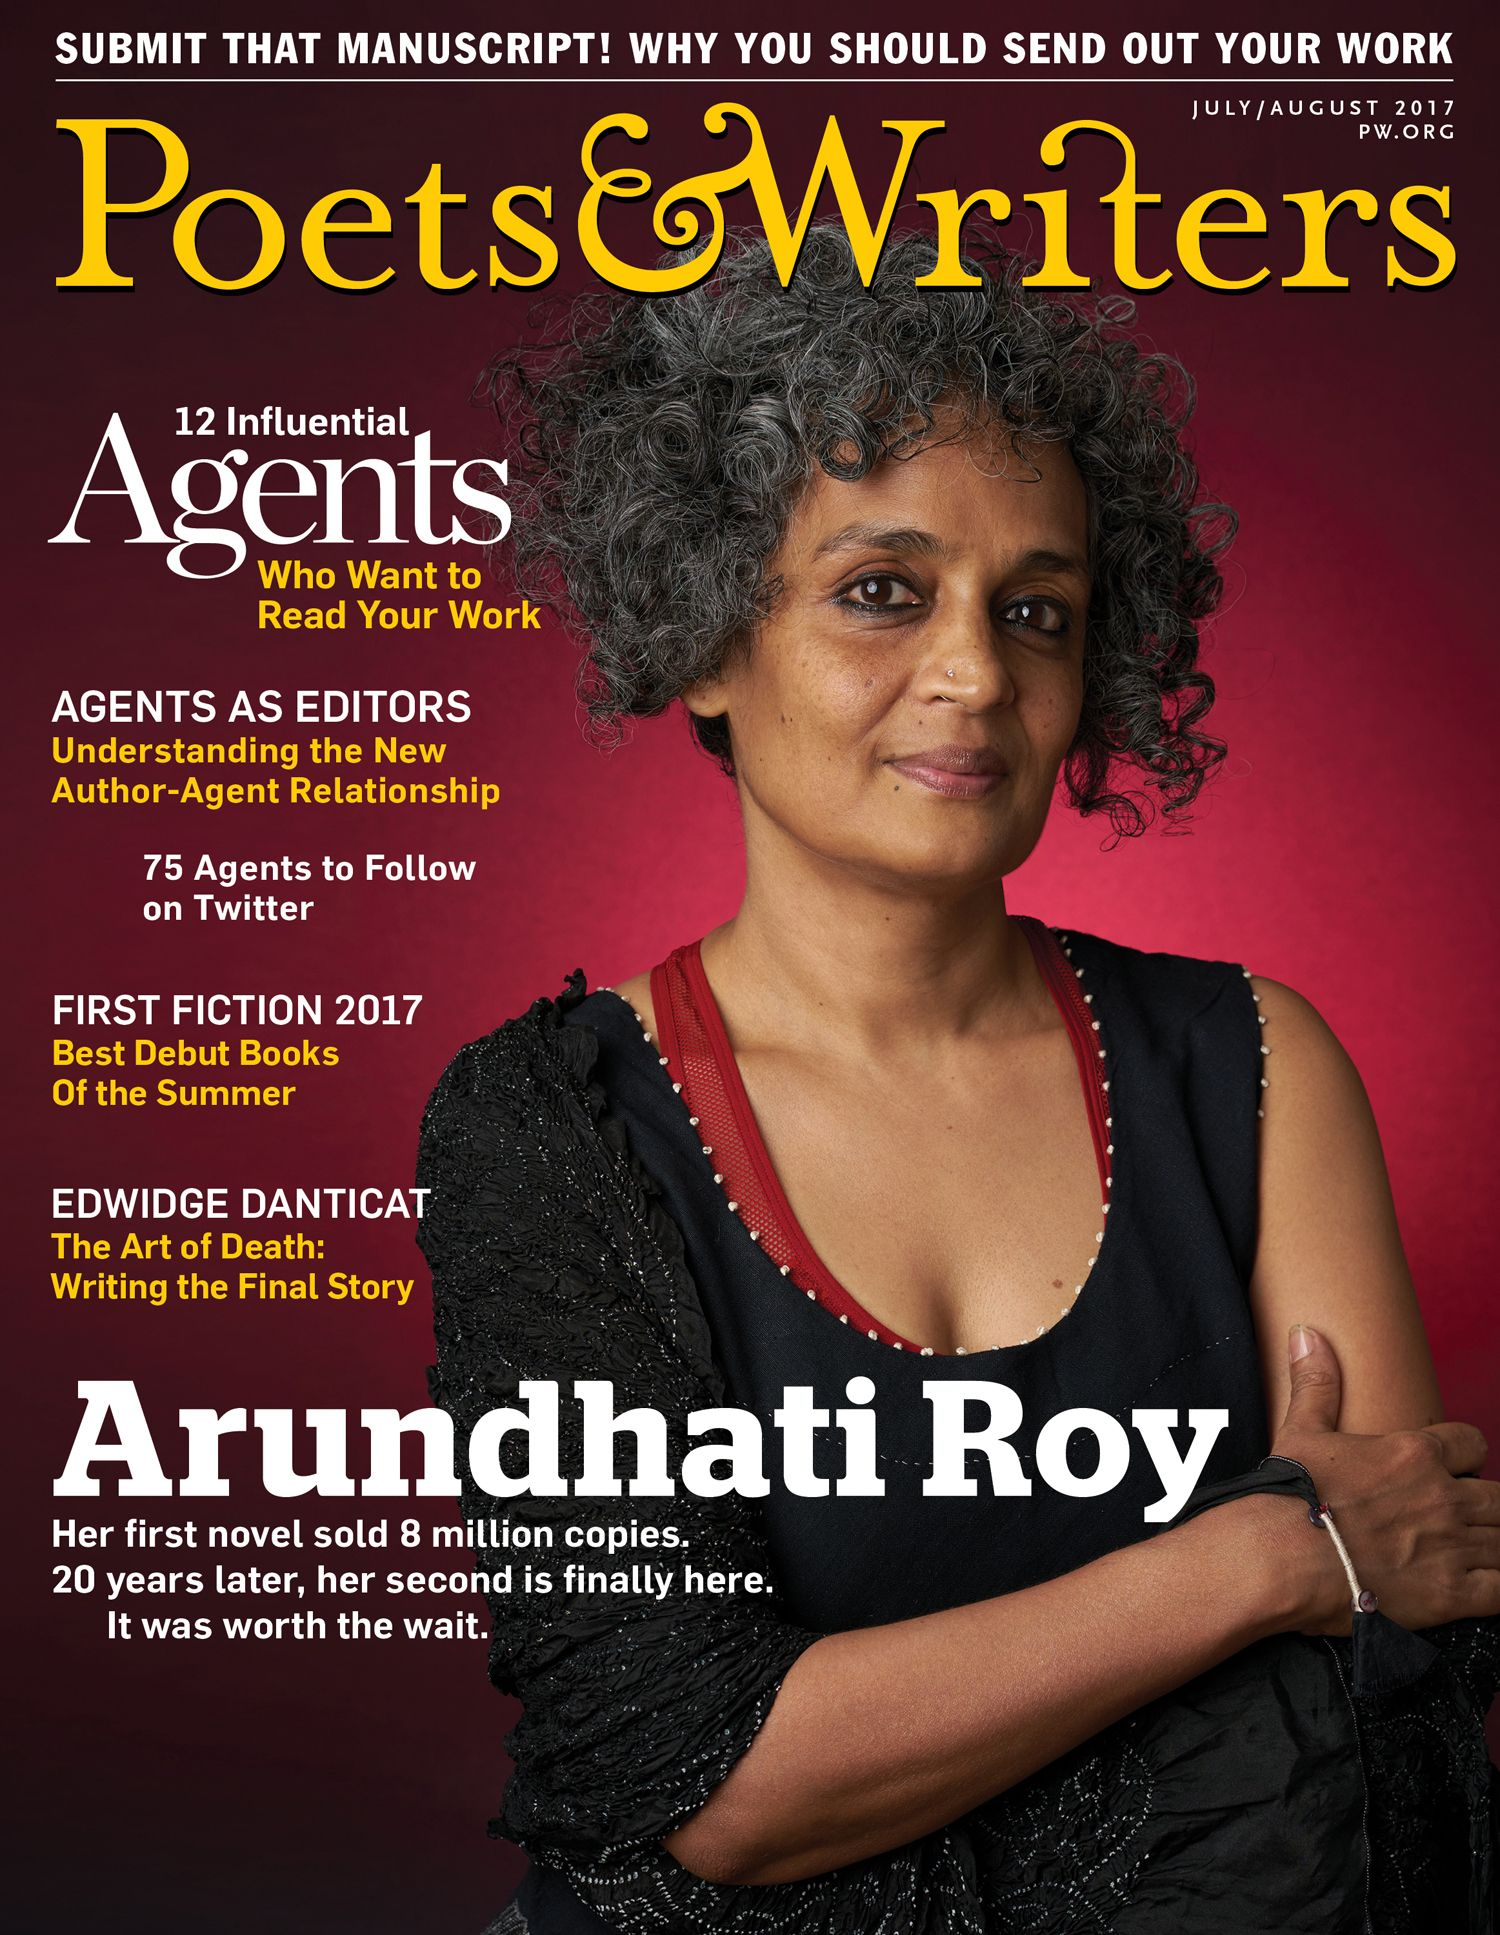 The July/August 2017 issue of Poets & Writers Magazine